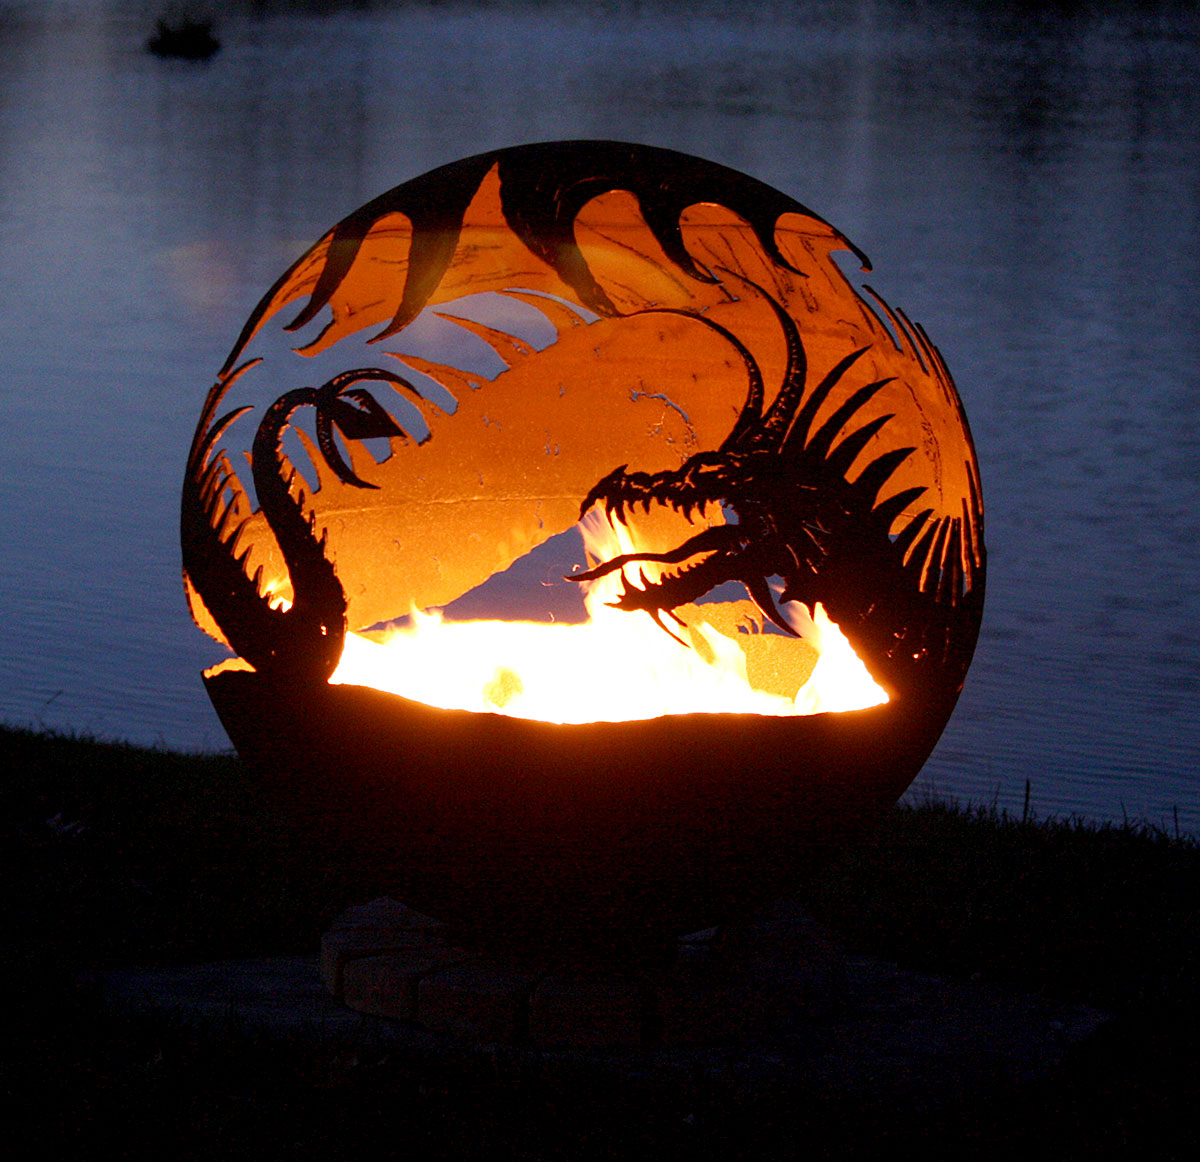 Pendragon S Hearth Dragon Fire Pit Sphere The Fire Pit